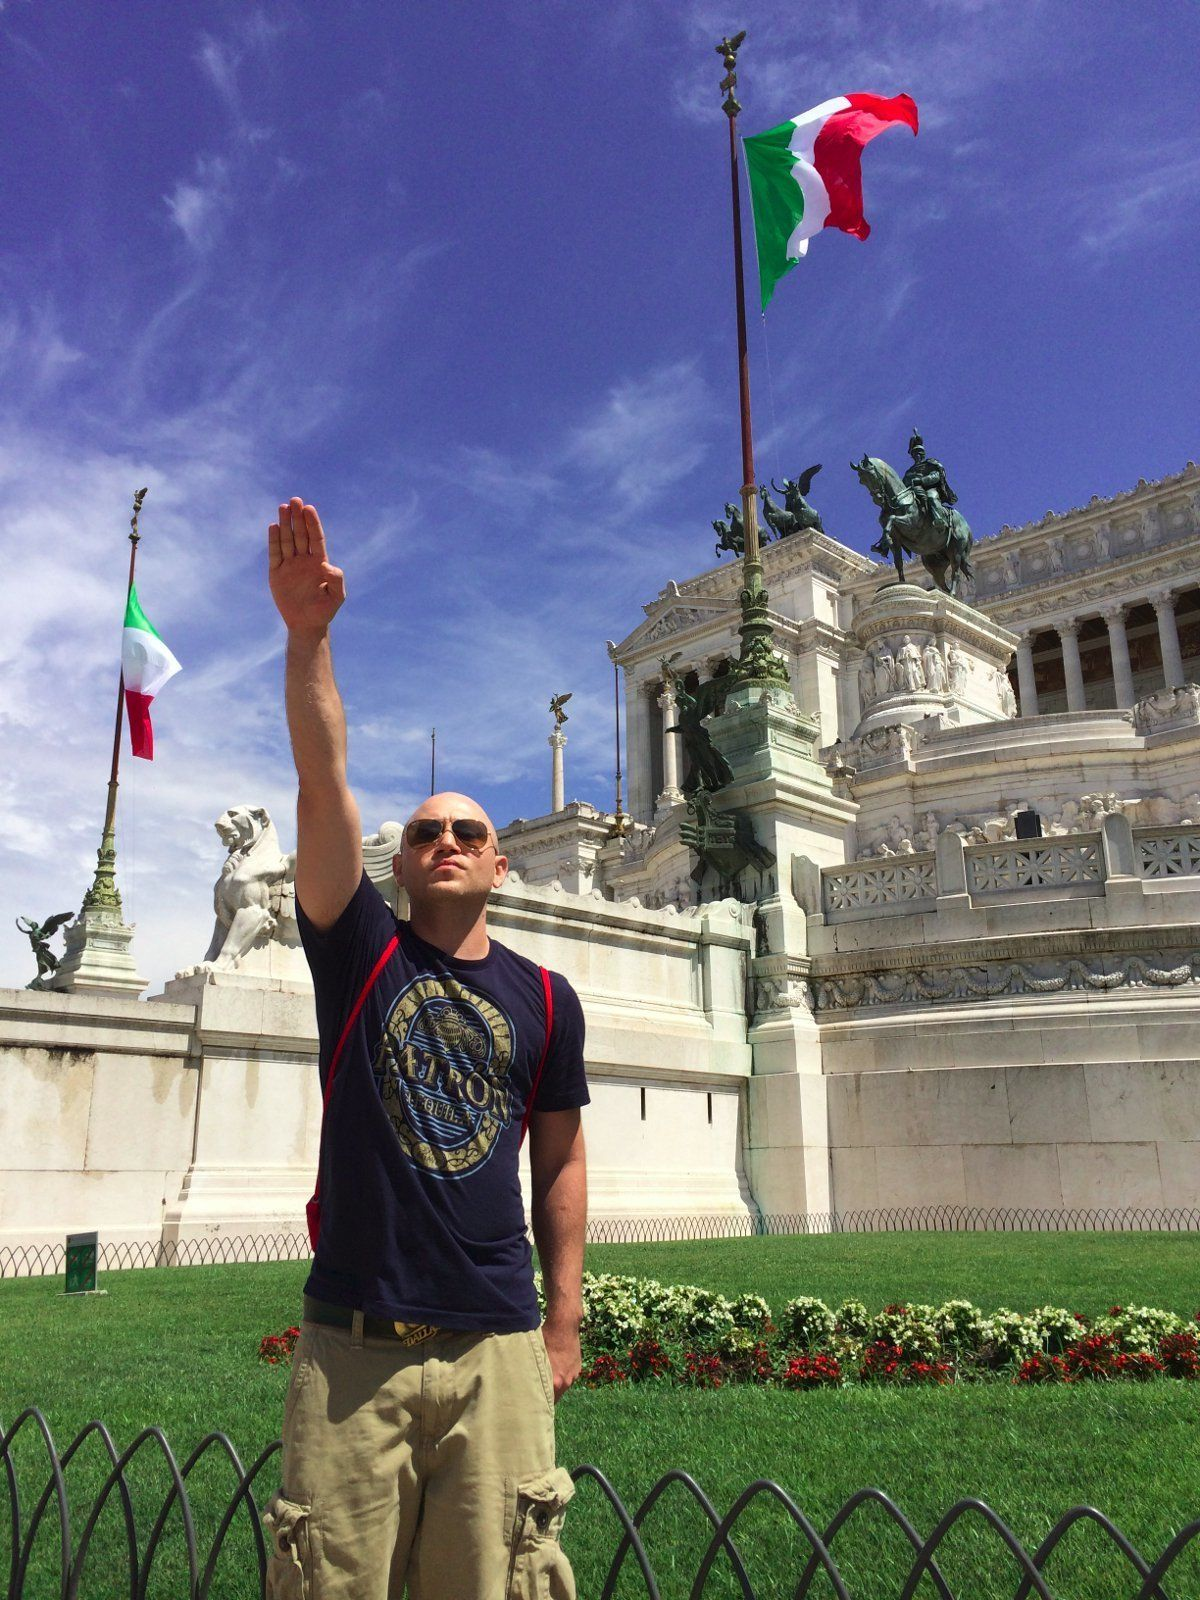 Andrew Anglin sieg heils in Rome